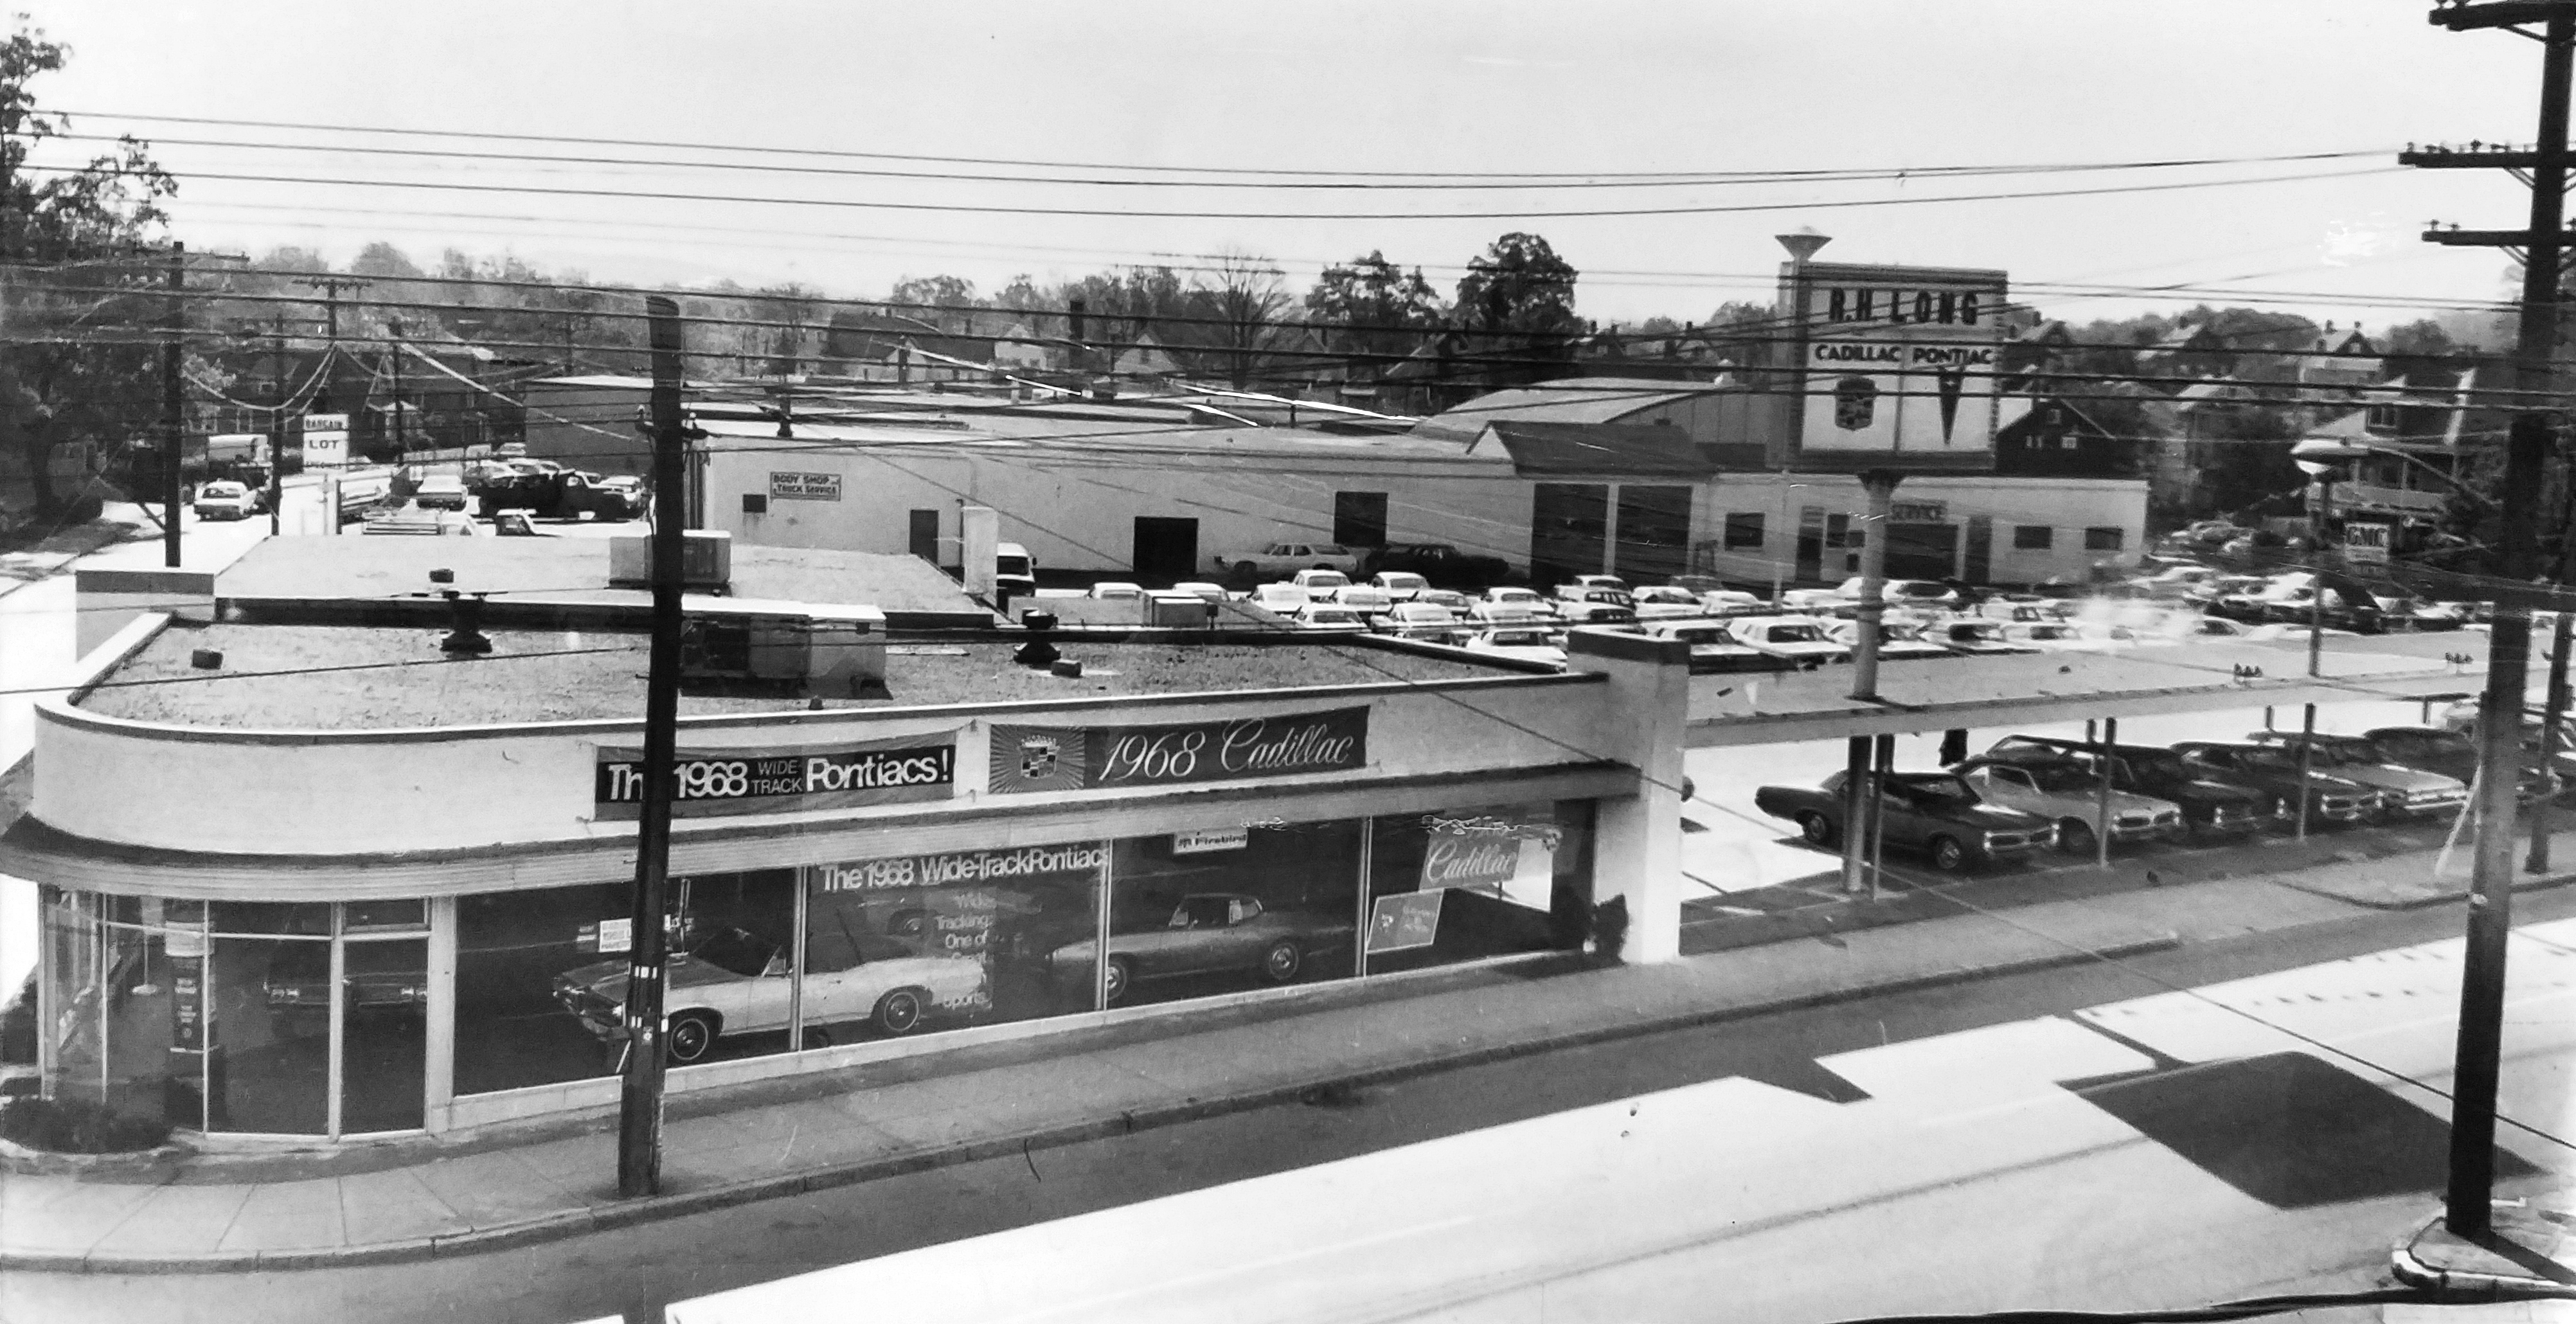 R.H. Long dealership c.1968